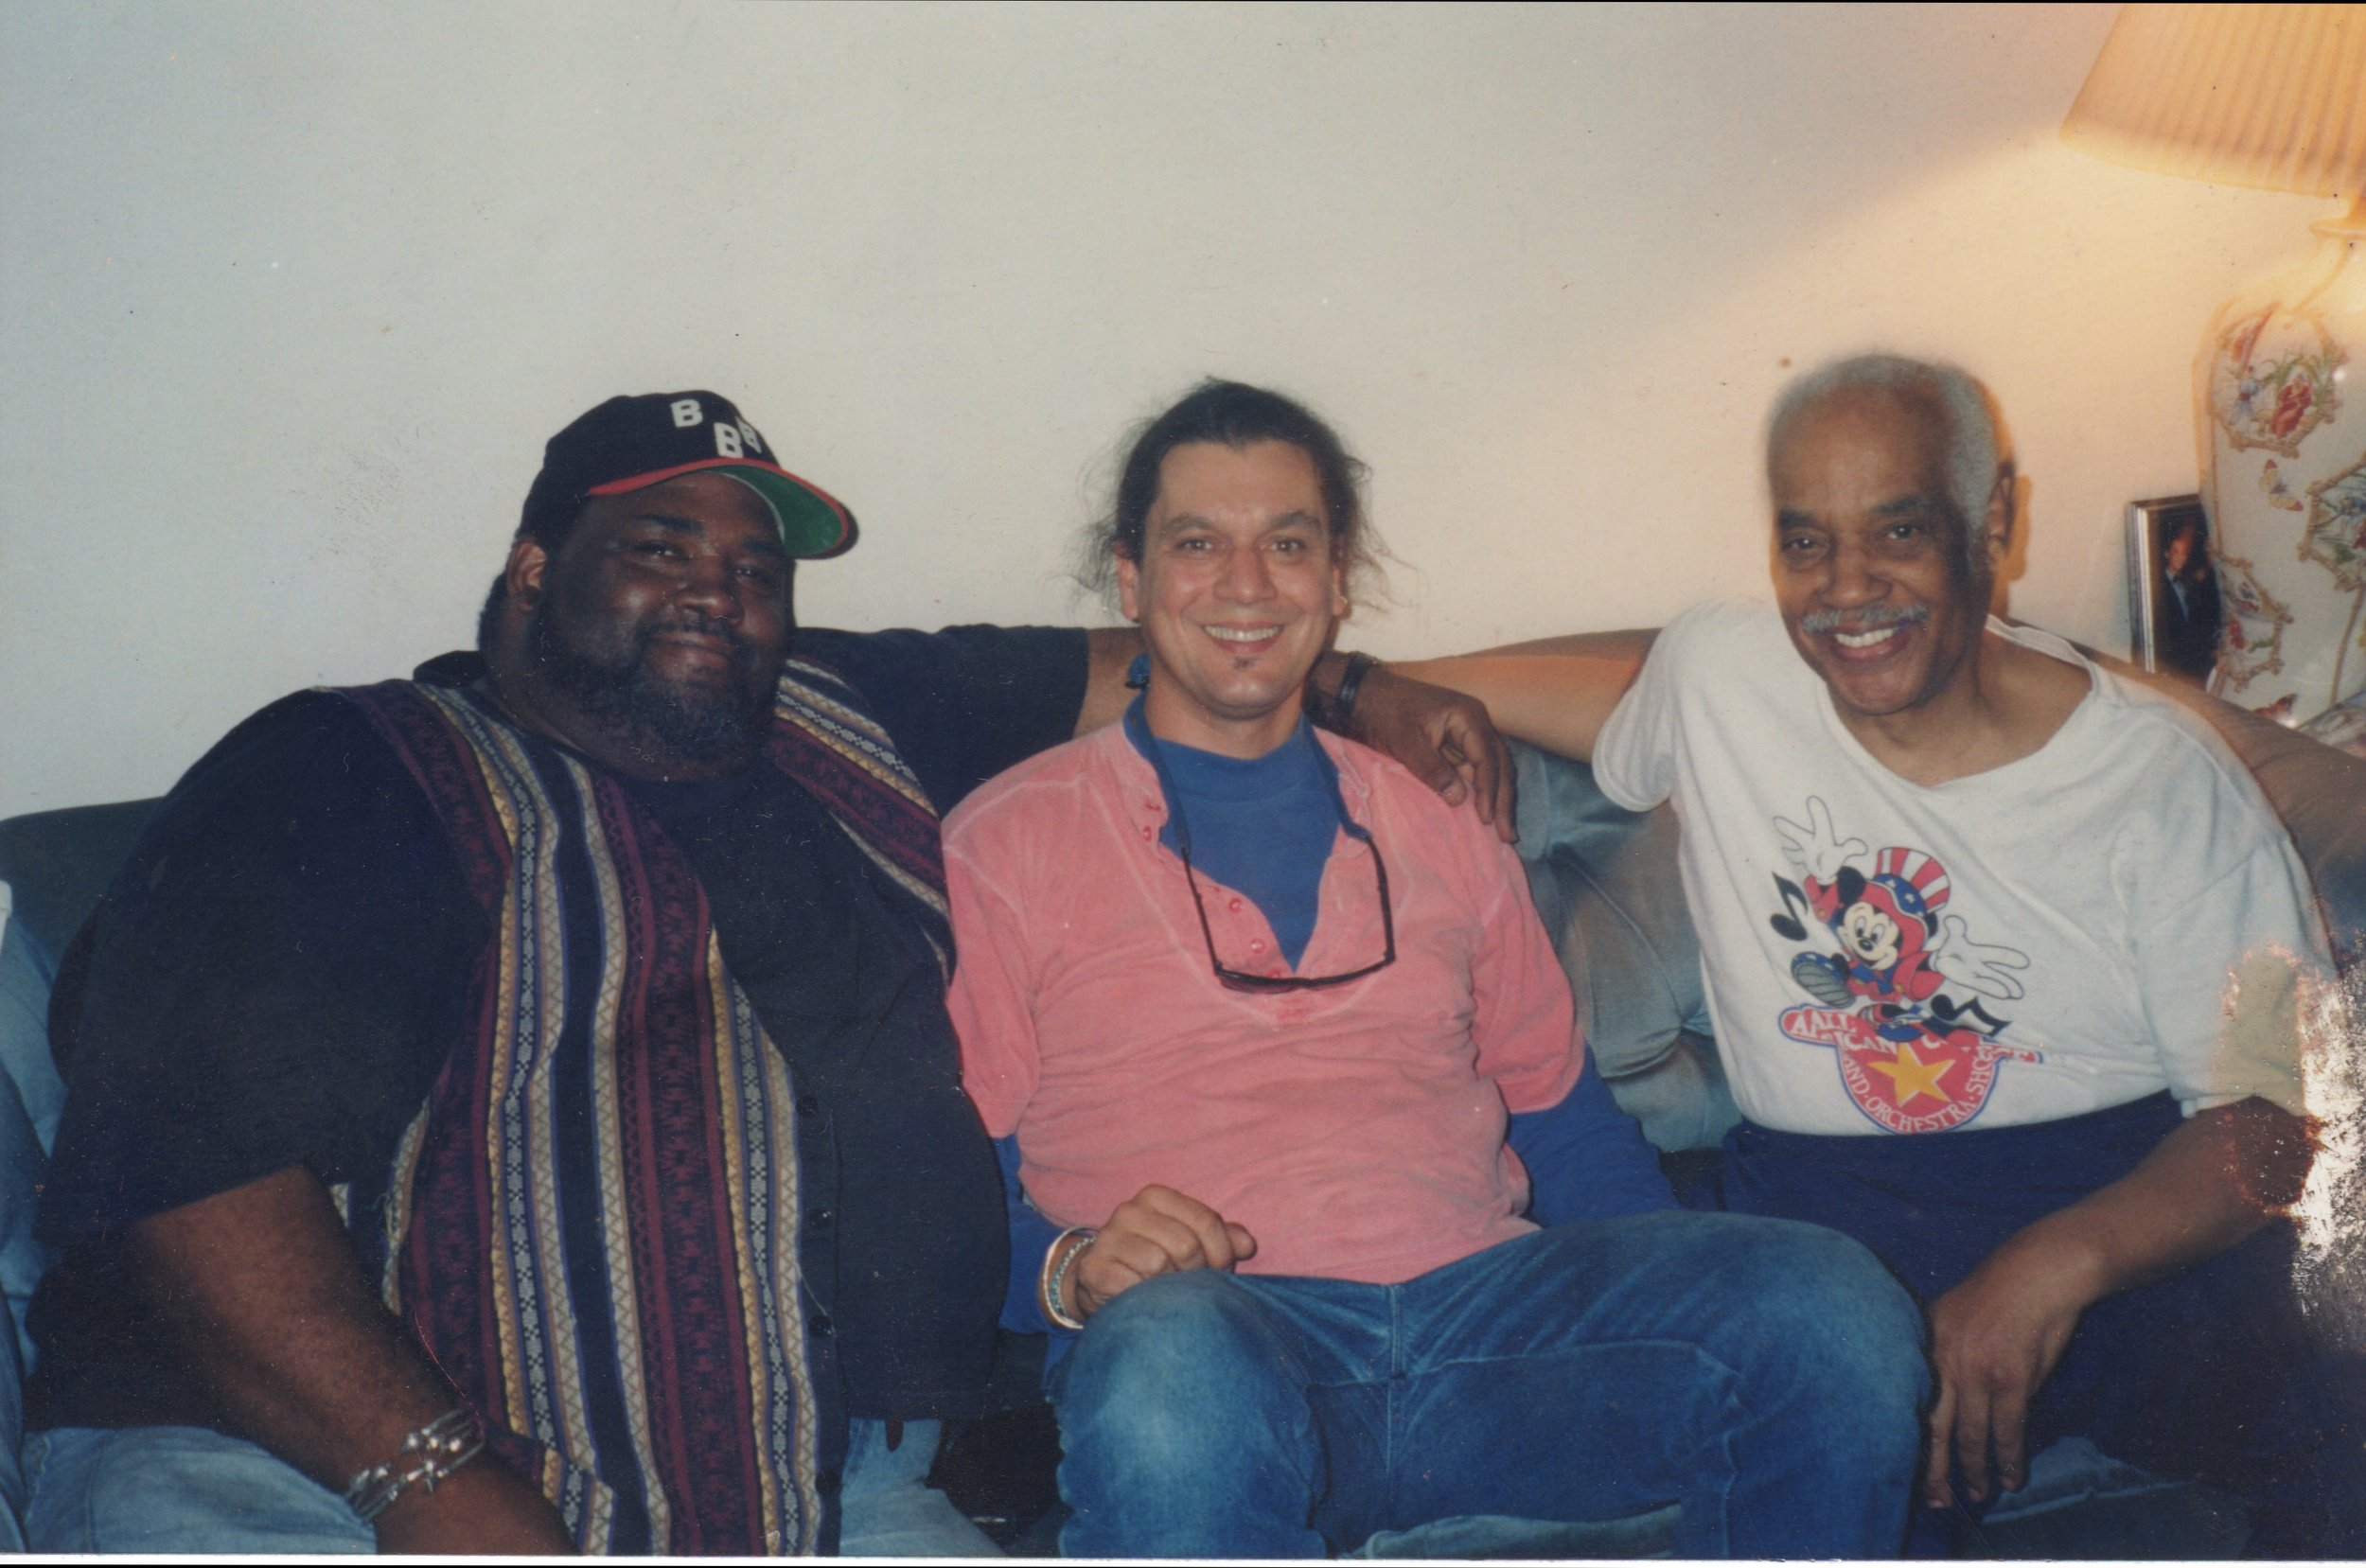 One of the happiest days of my life.  Ron Taylor (Little Shop of Horrors, Trading Places, It Ain't Nothin' but the Blues), Mercer Ellington and me.  We were planning to bring A Drum is a Woman to Broadway.